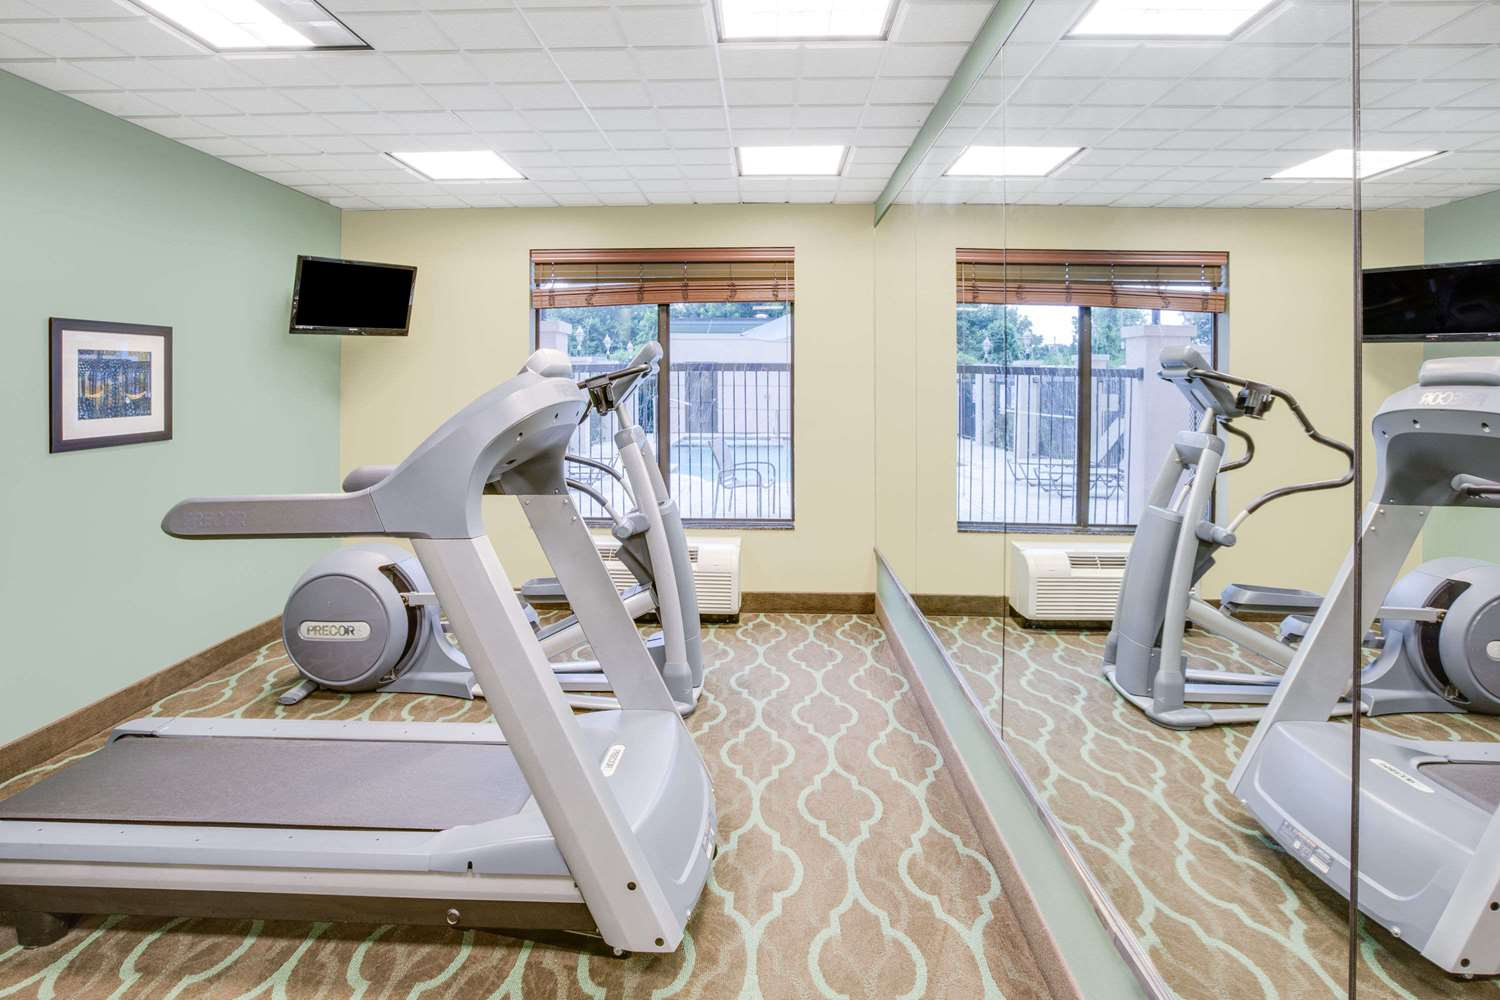 Fitness/ Exercise Room - Wingate by Wyndham Hotel Bossier City